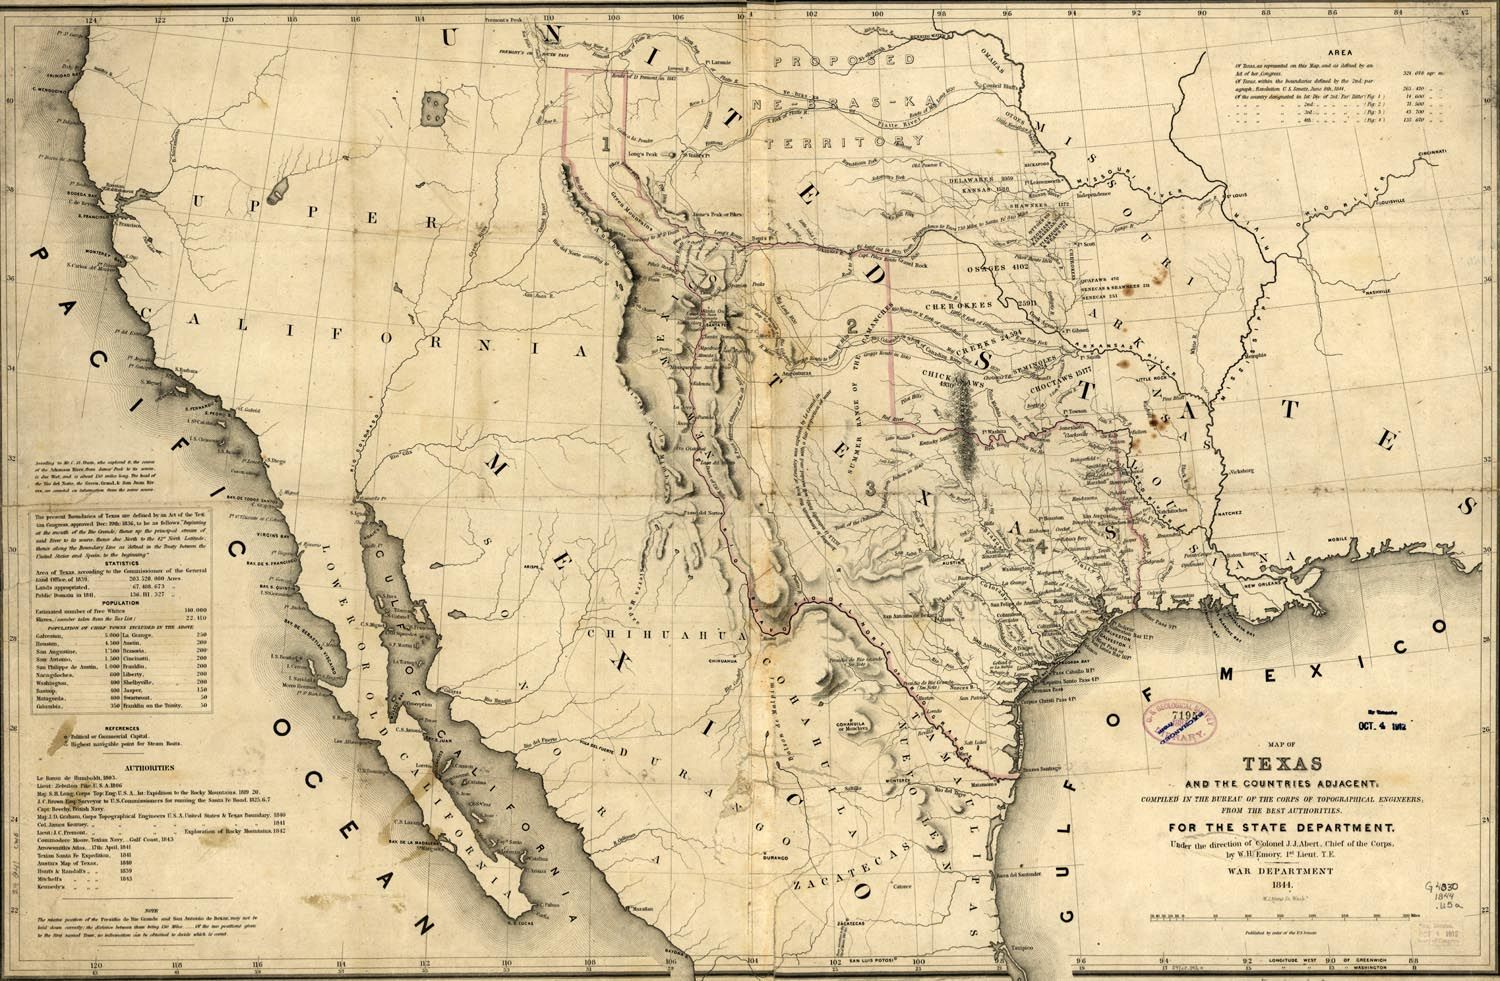 Map of Texas in 1846